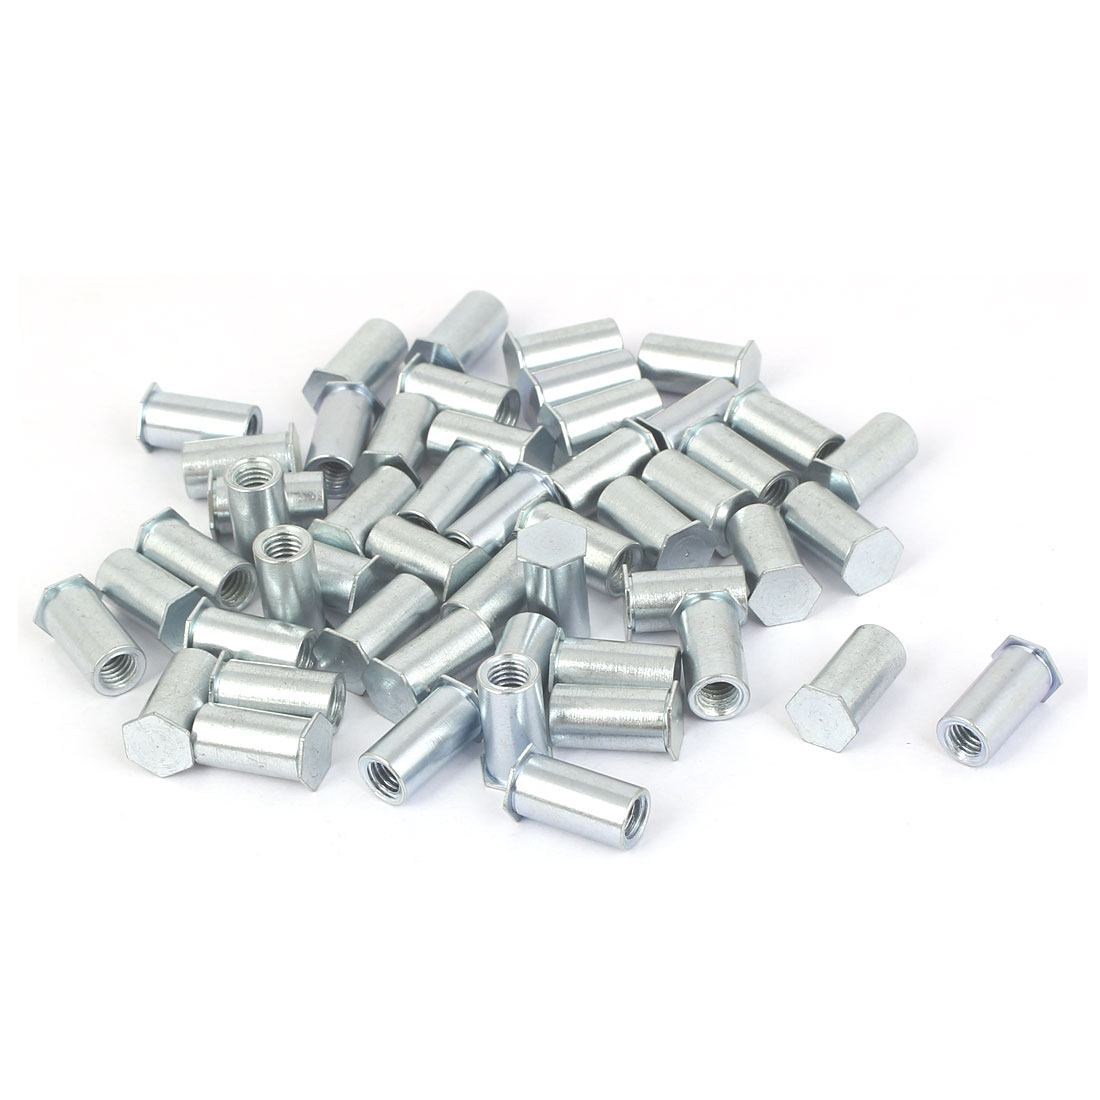 M5 x 14mm Hex Head Zinc Plated Blind Self Clinching Standoffs 50 Pcs